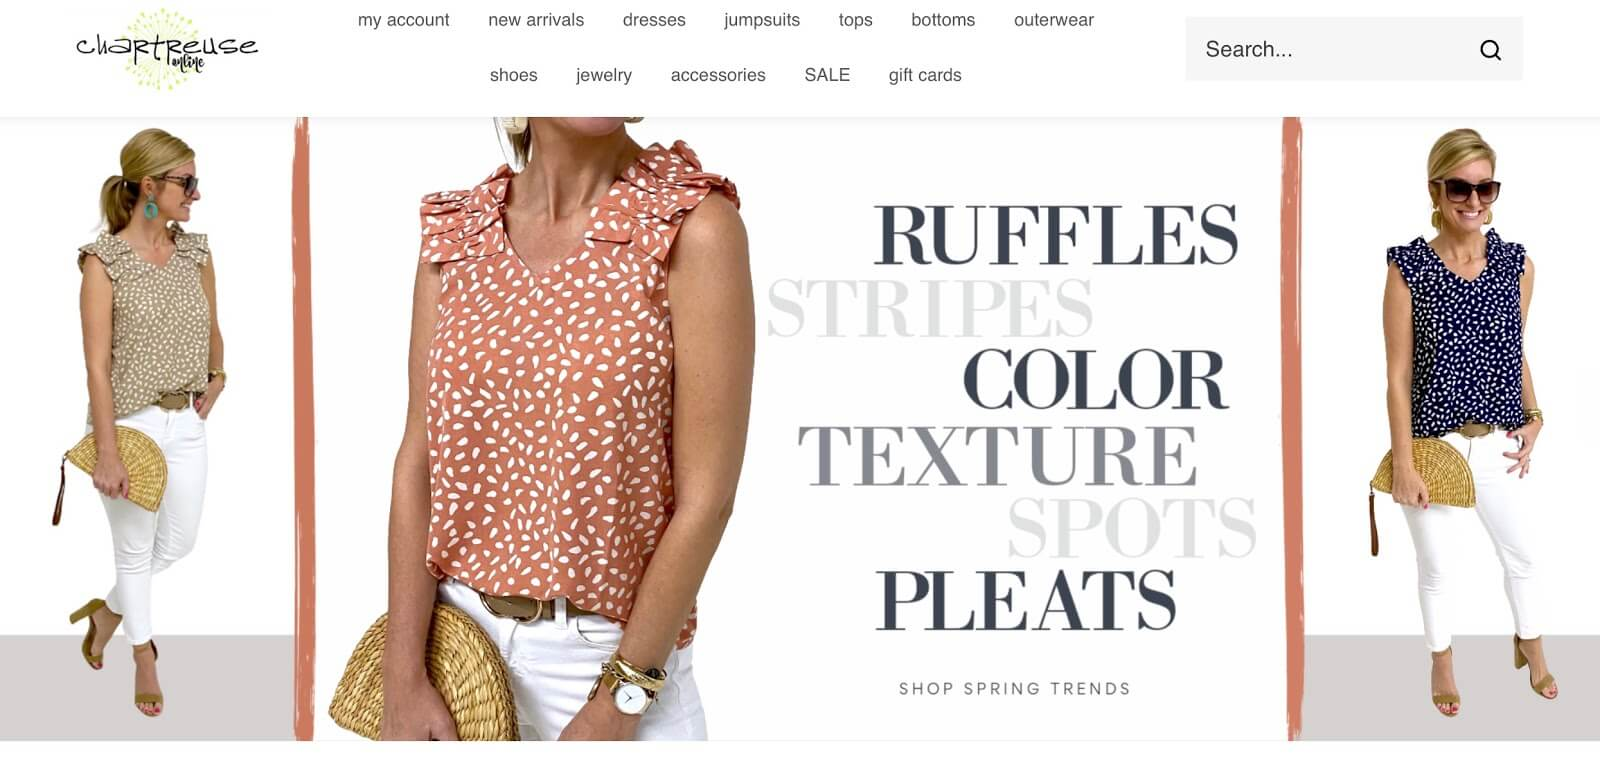 Screenshot of Chartreuse Boutique's online store through Volusion.